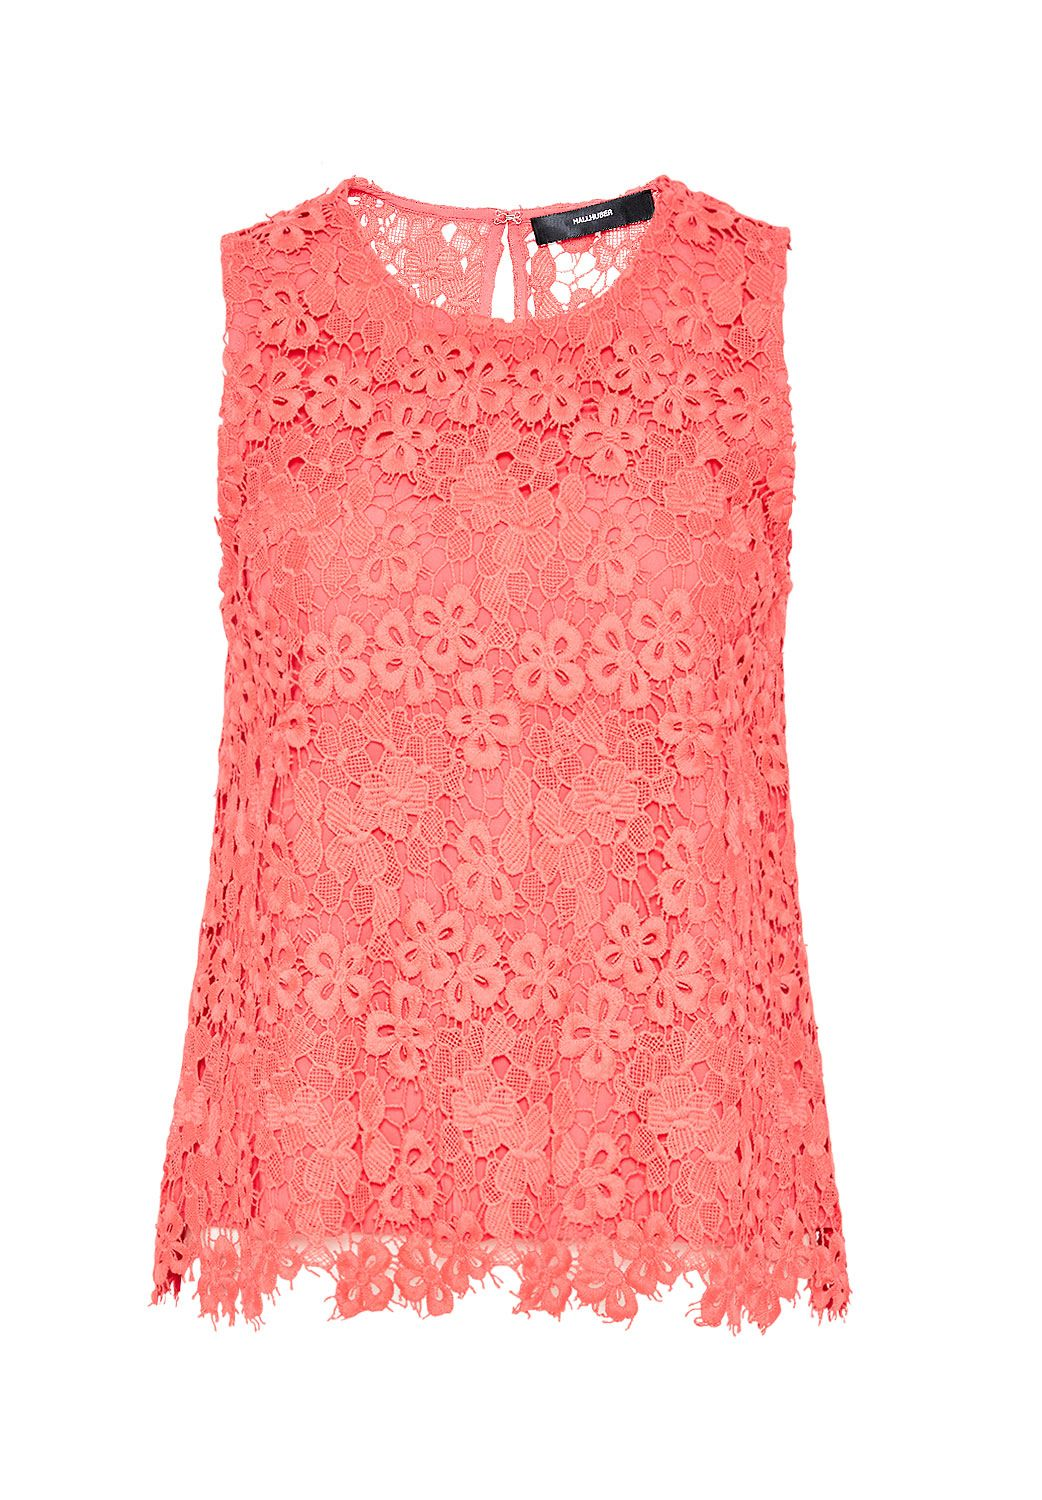 Hallhuber Back slit lace top, Pink